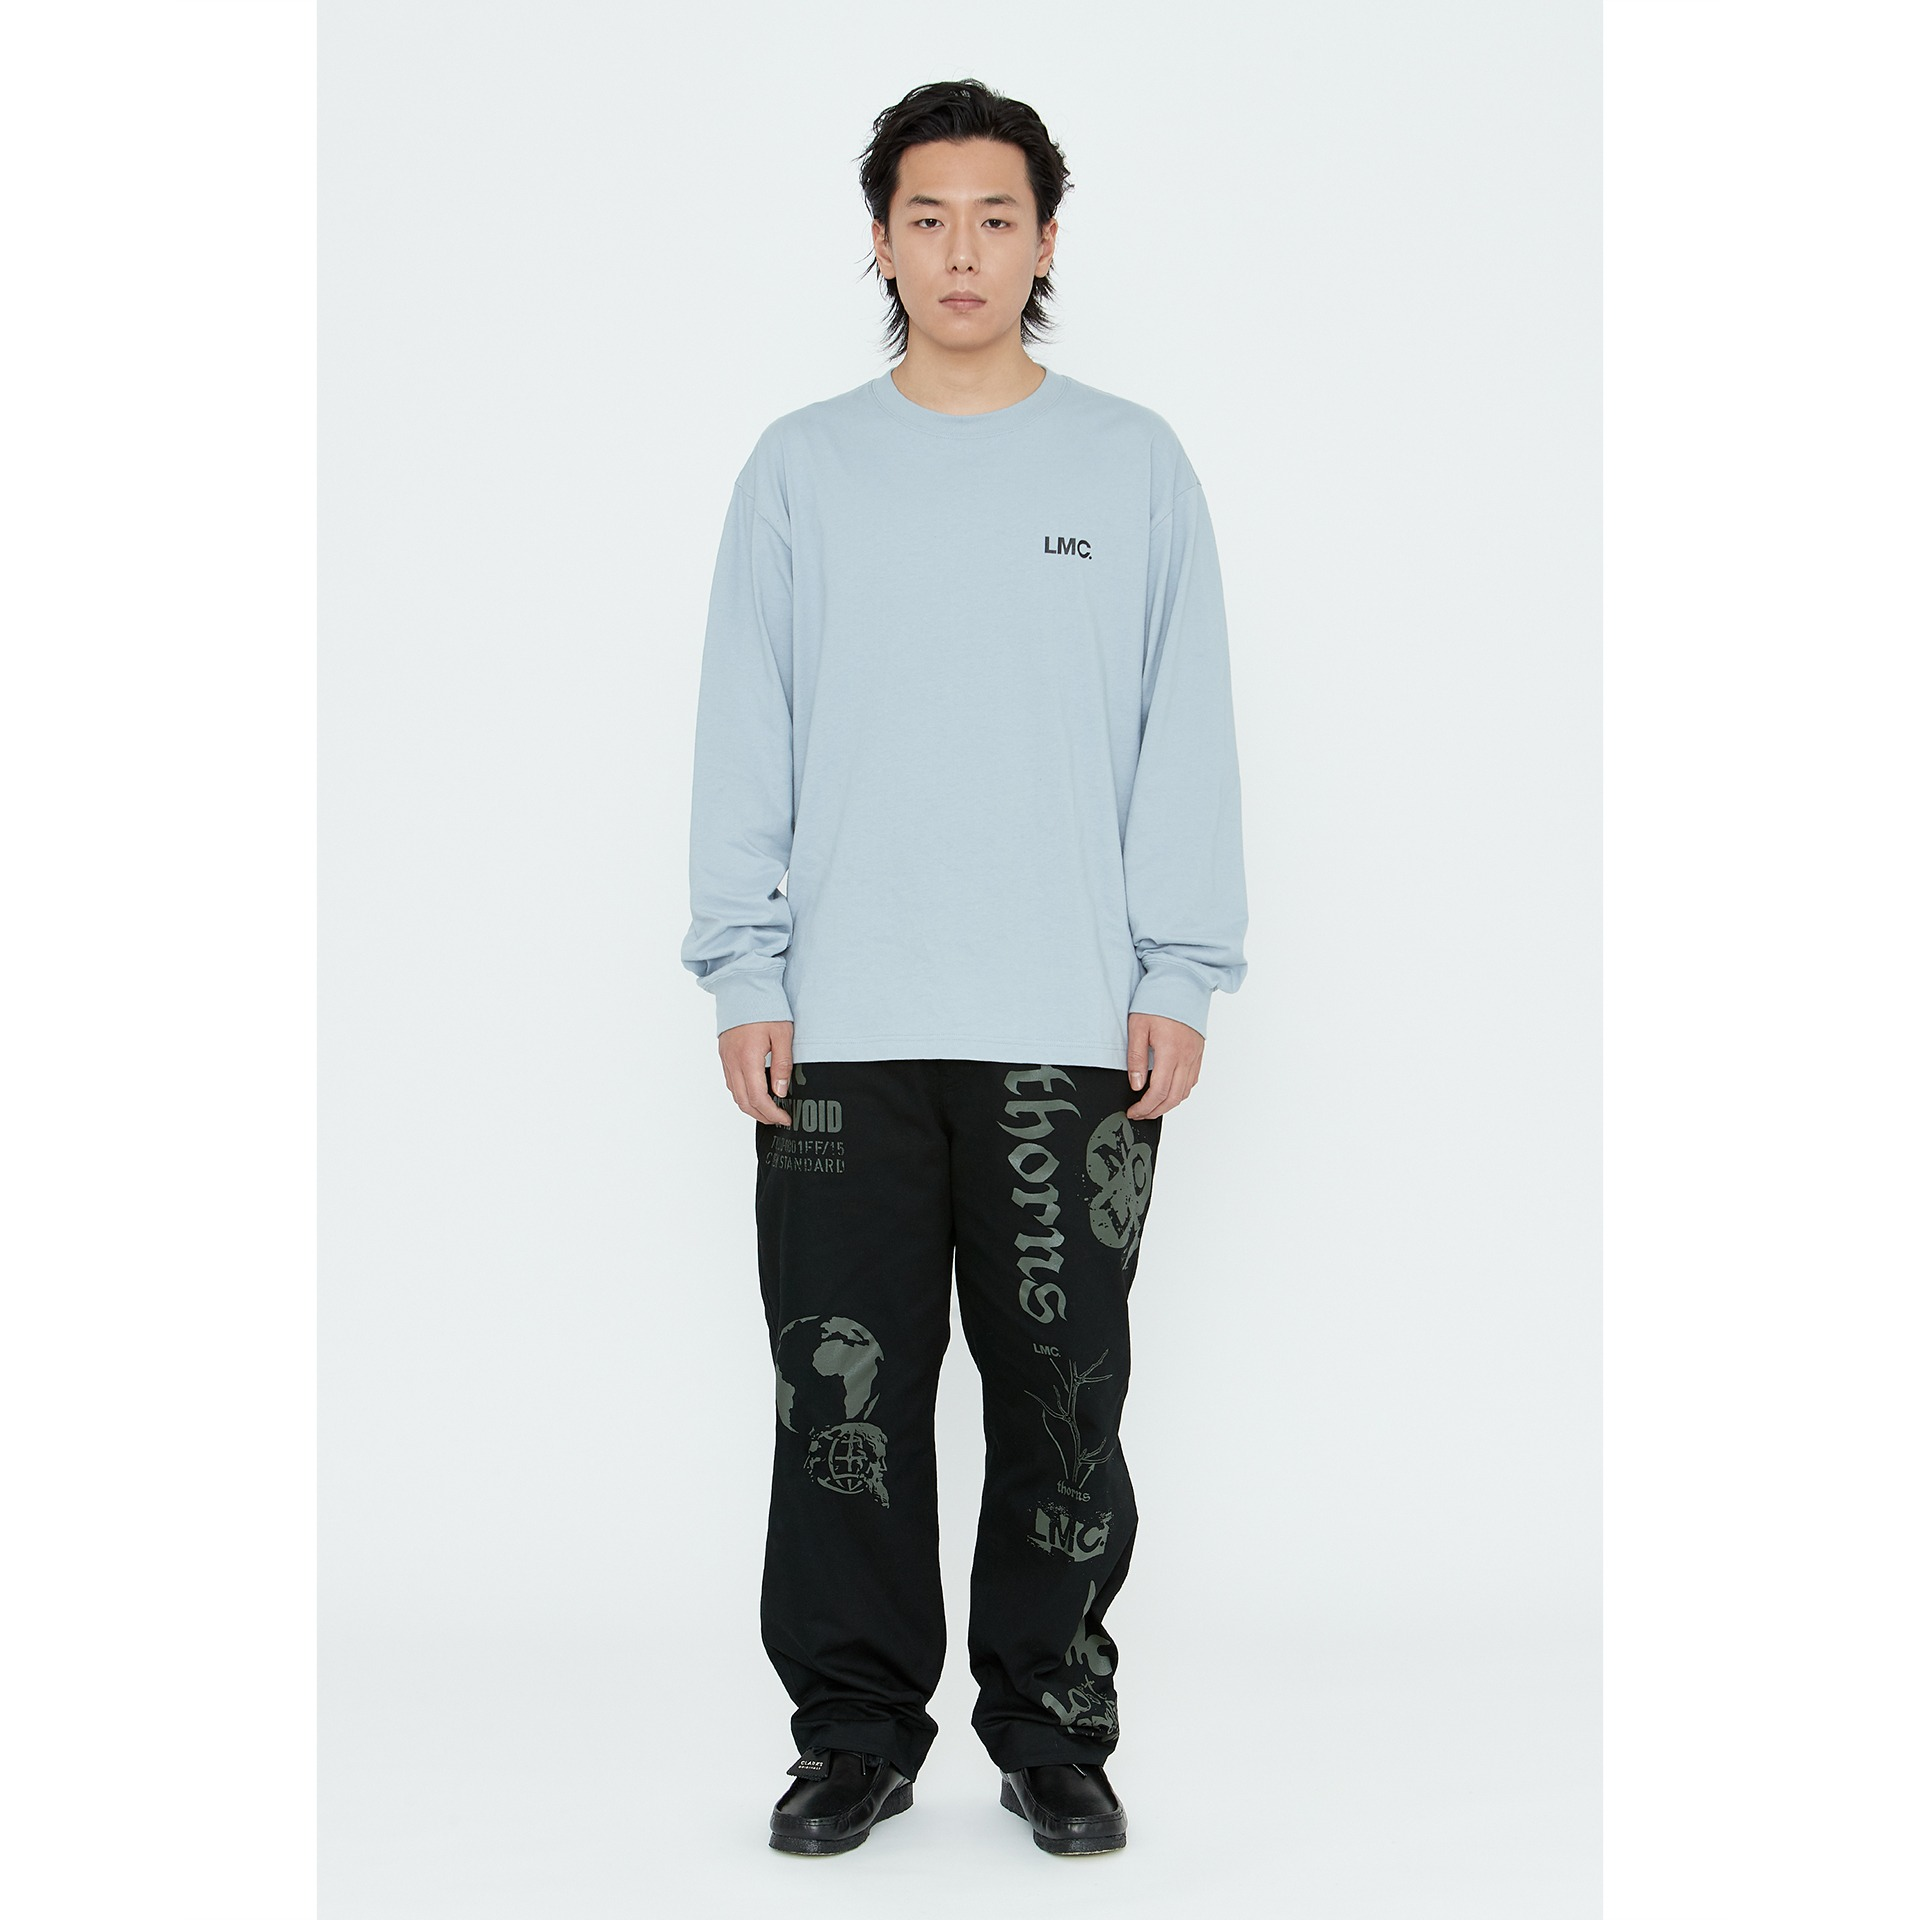 LMC BASIC OG LONG SLV TEE blue gray